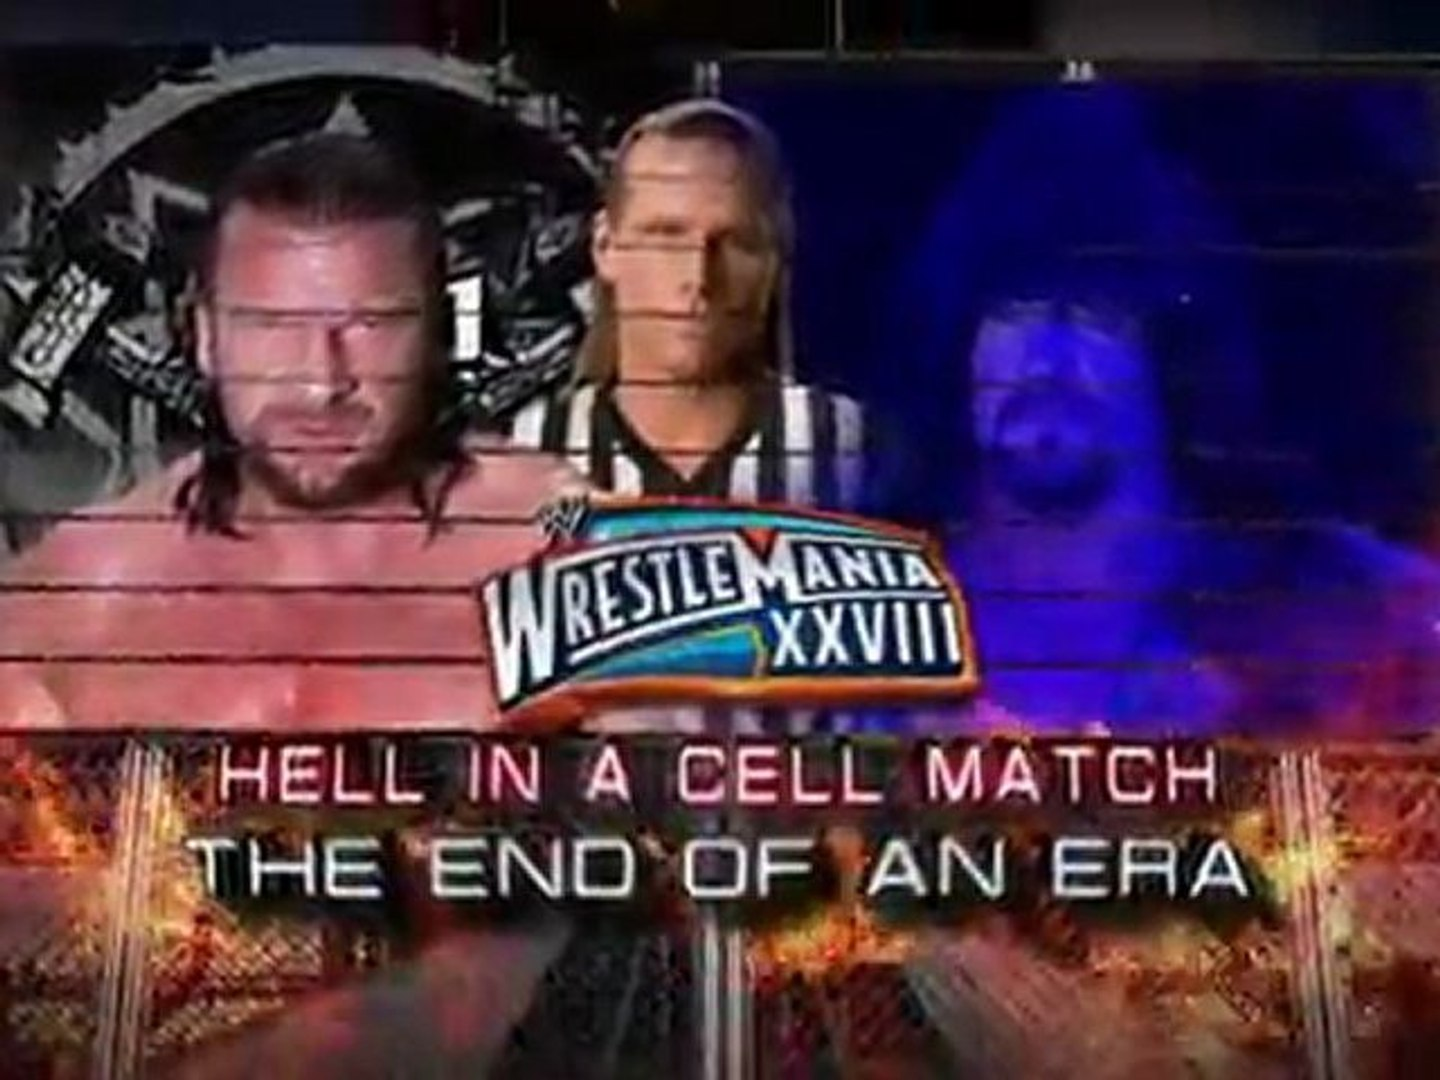 The Undertaker battles Triple H in a Hell in a Cell